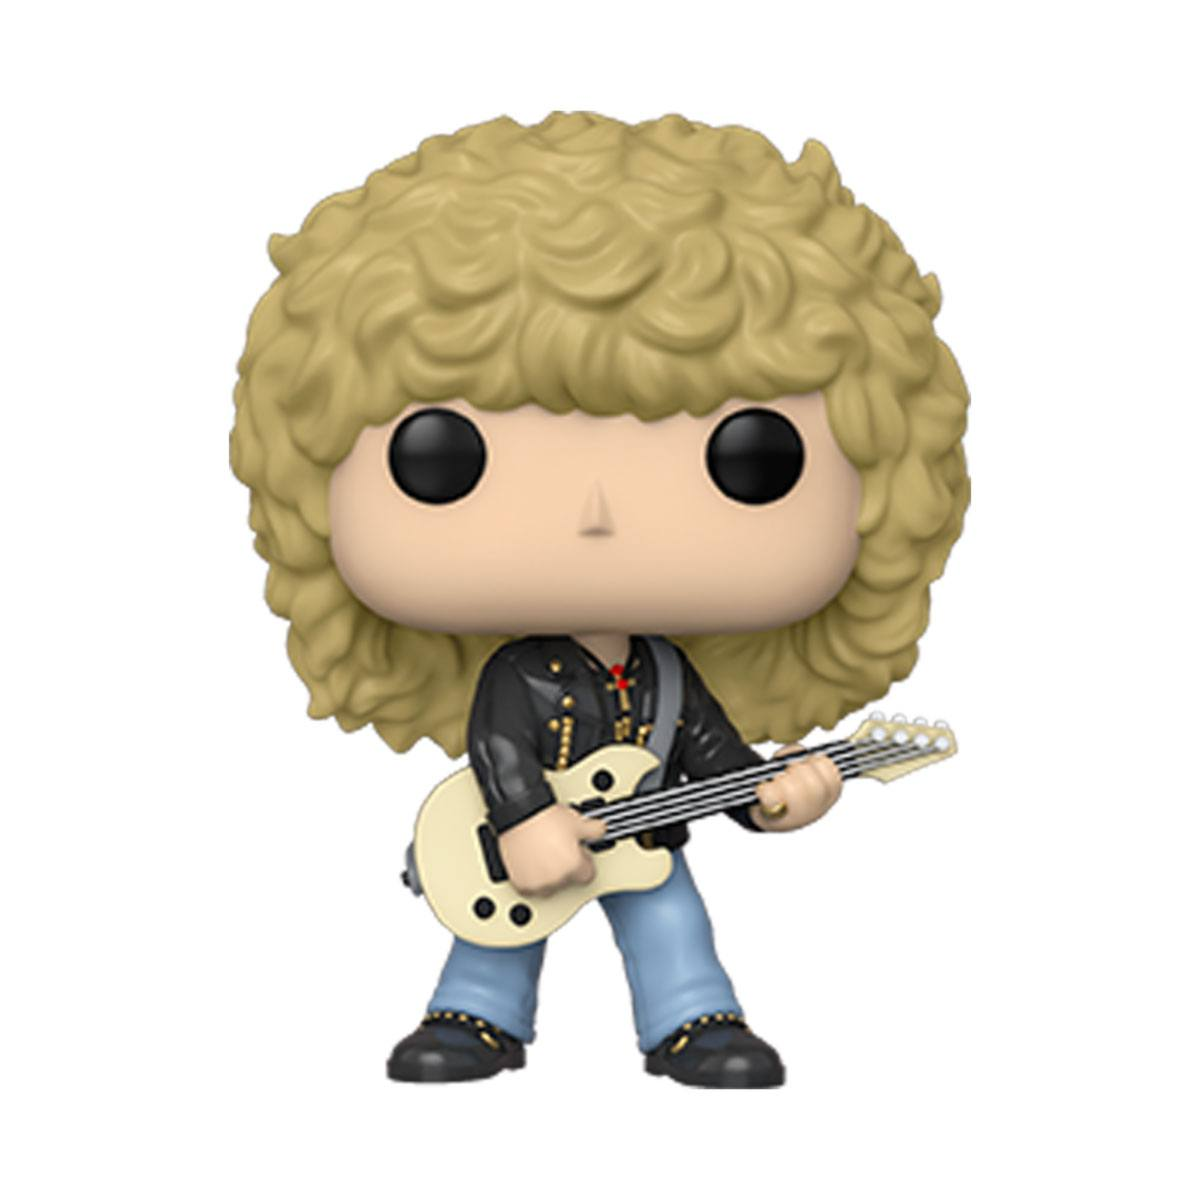 Def Leppard POP! Rocks Vinyl Figure Rick Savage 9 cm